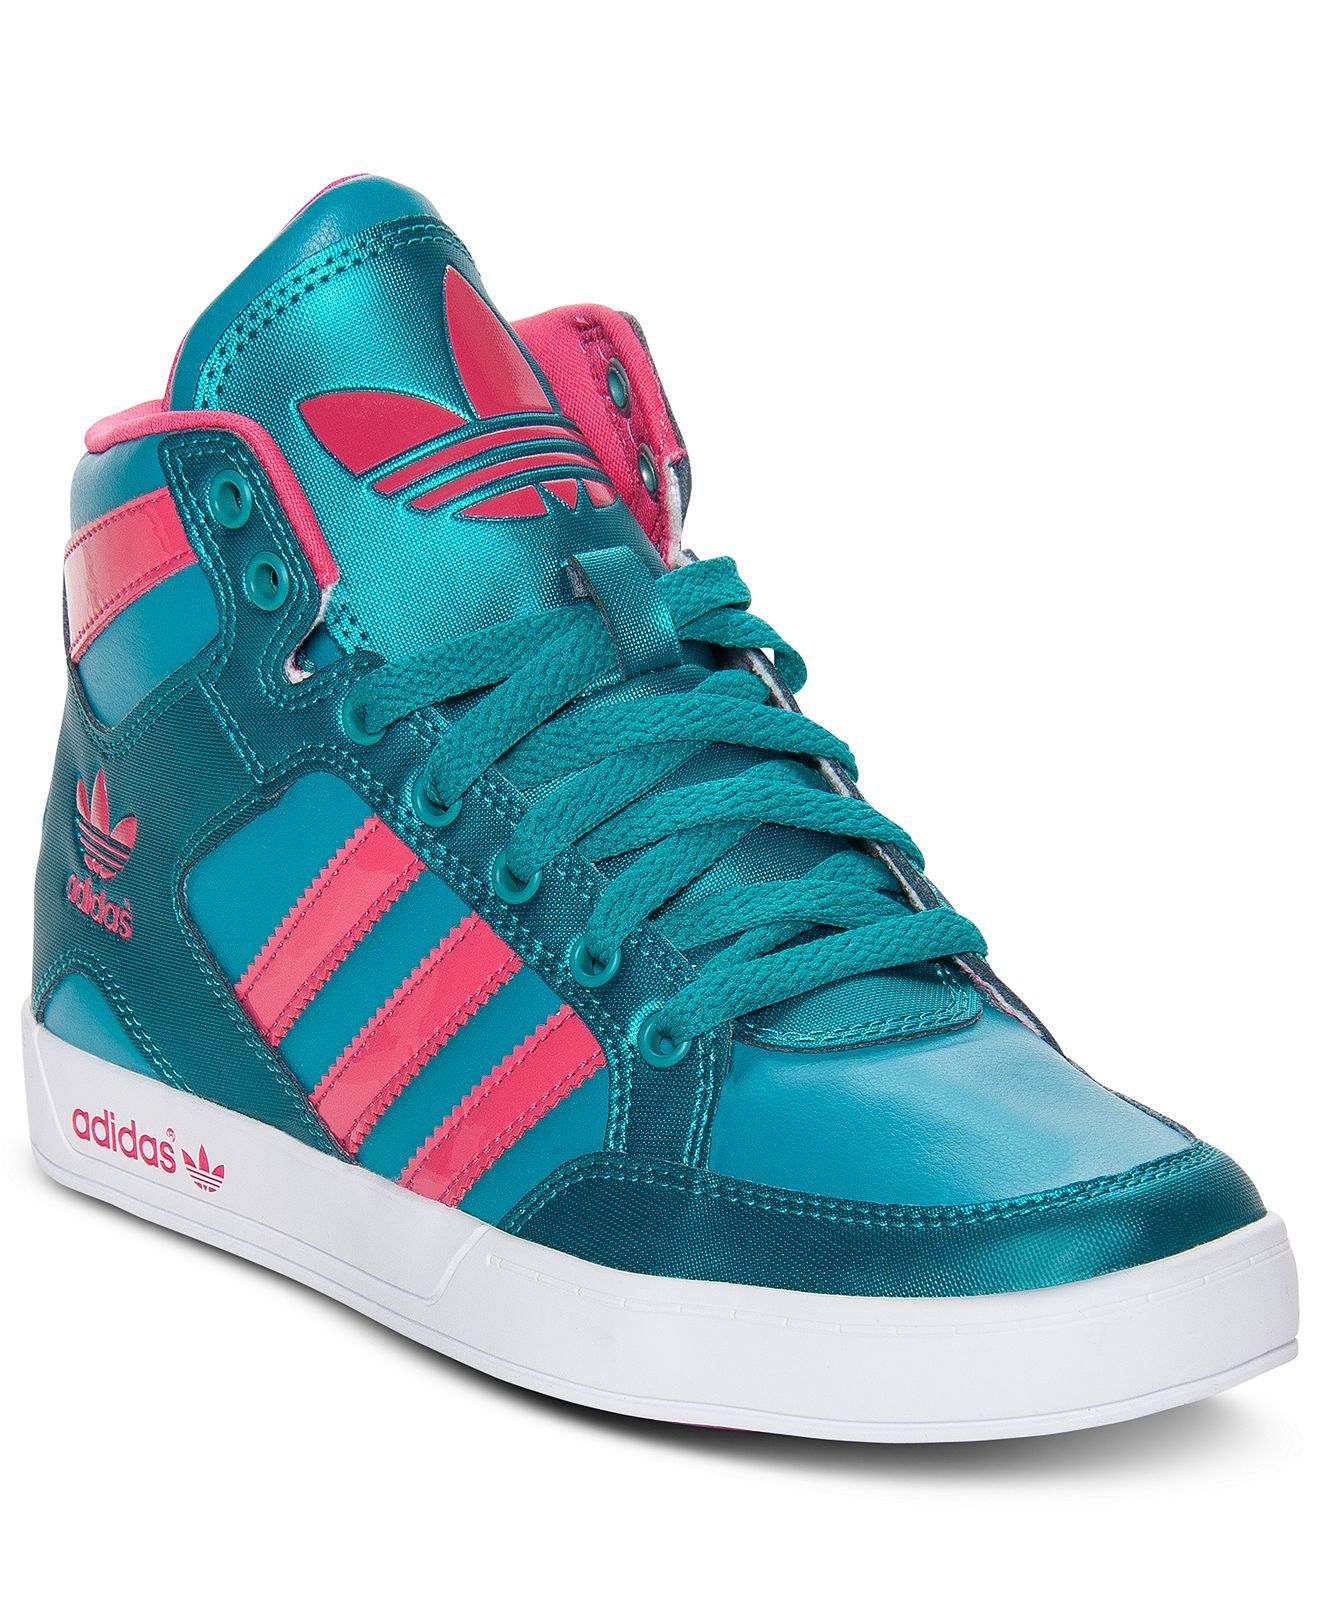 cheap for discount 2c68a 77612 adidas Womens Originals Hardcourt High Top Casual Sneakers from Finish  Line - Finish Line Athletic Shoes - Kids  Baby - Macys